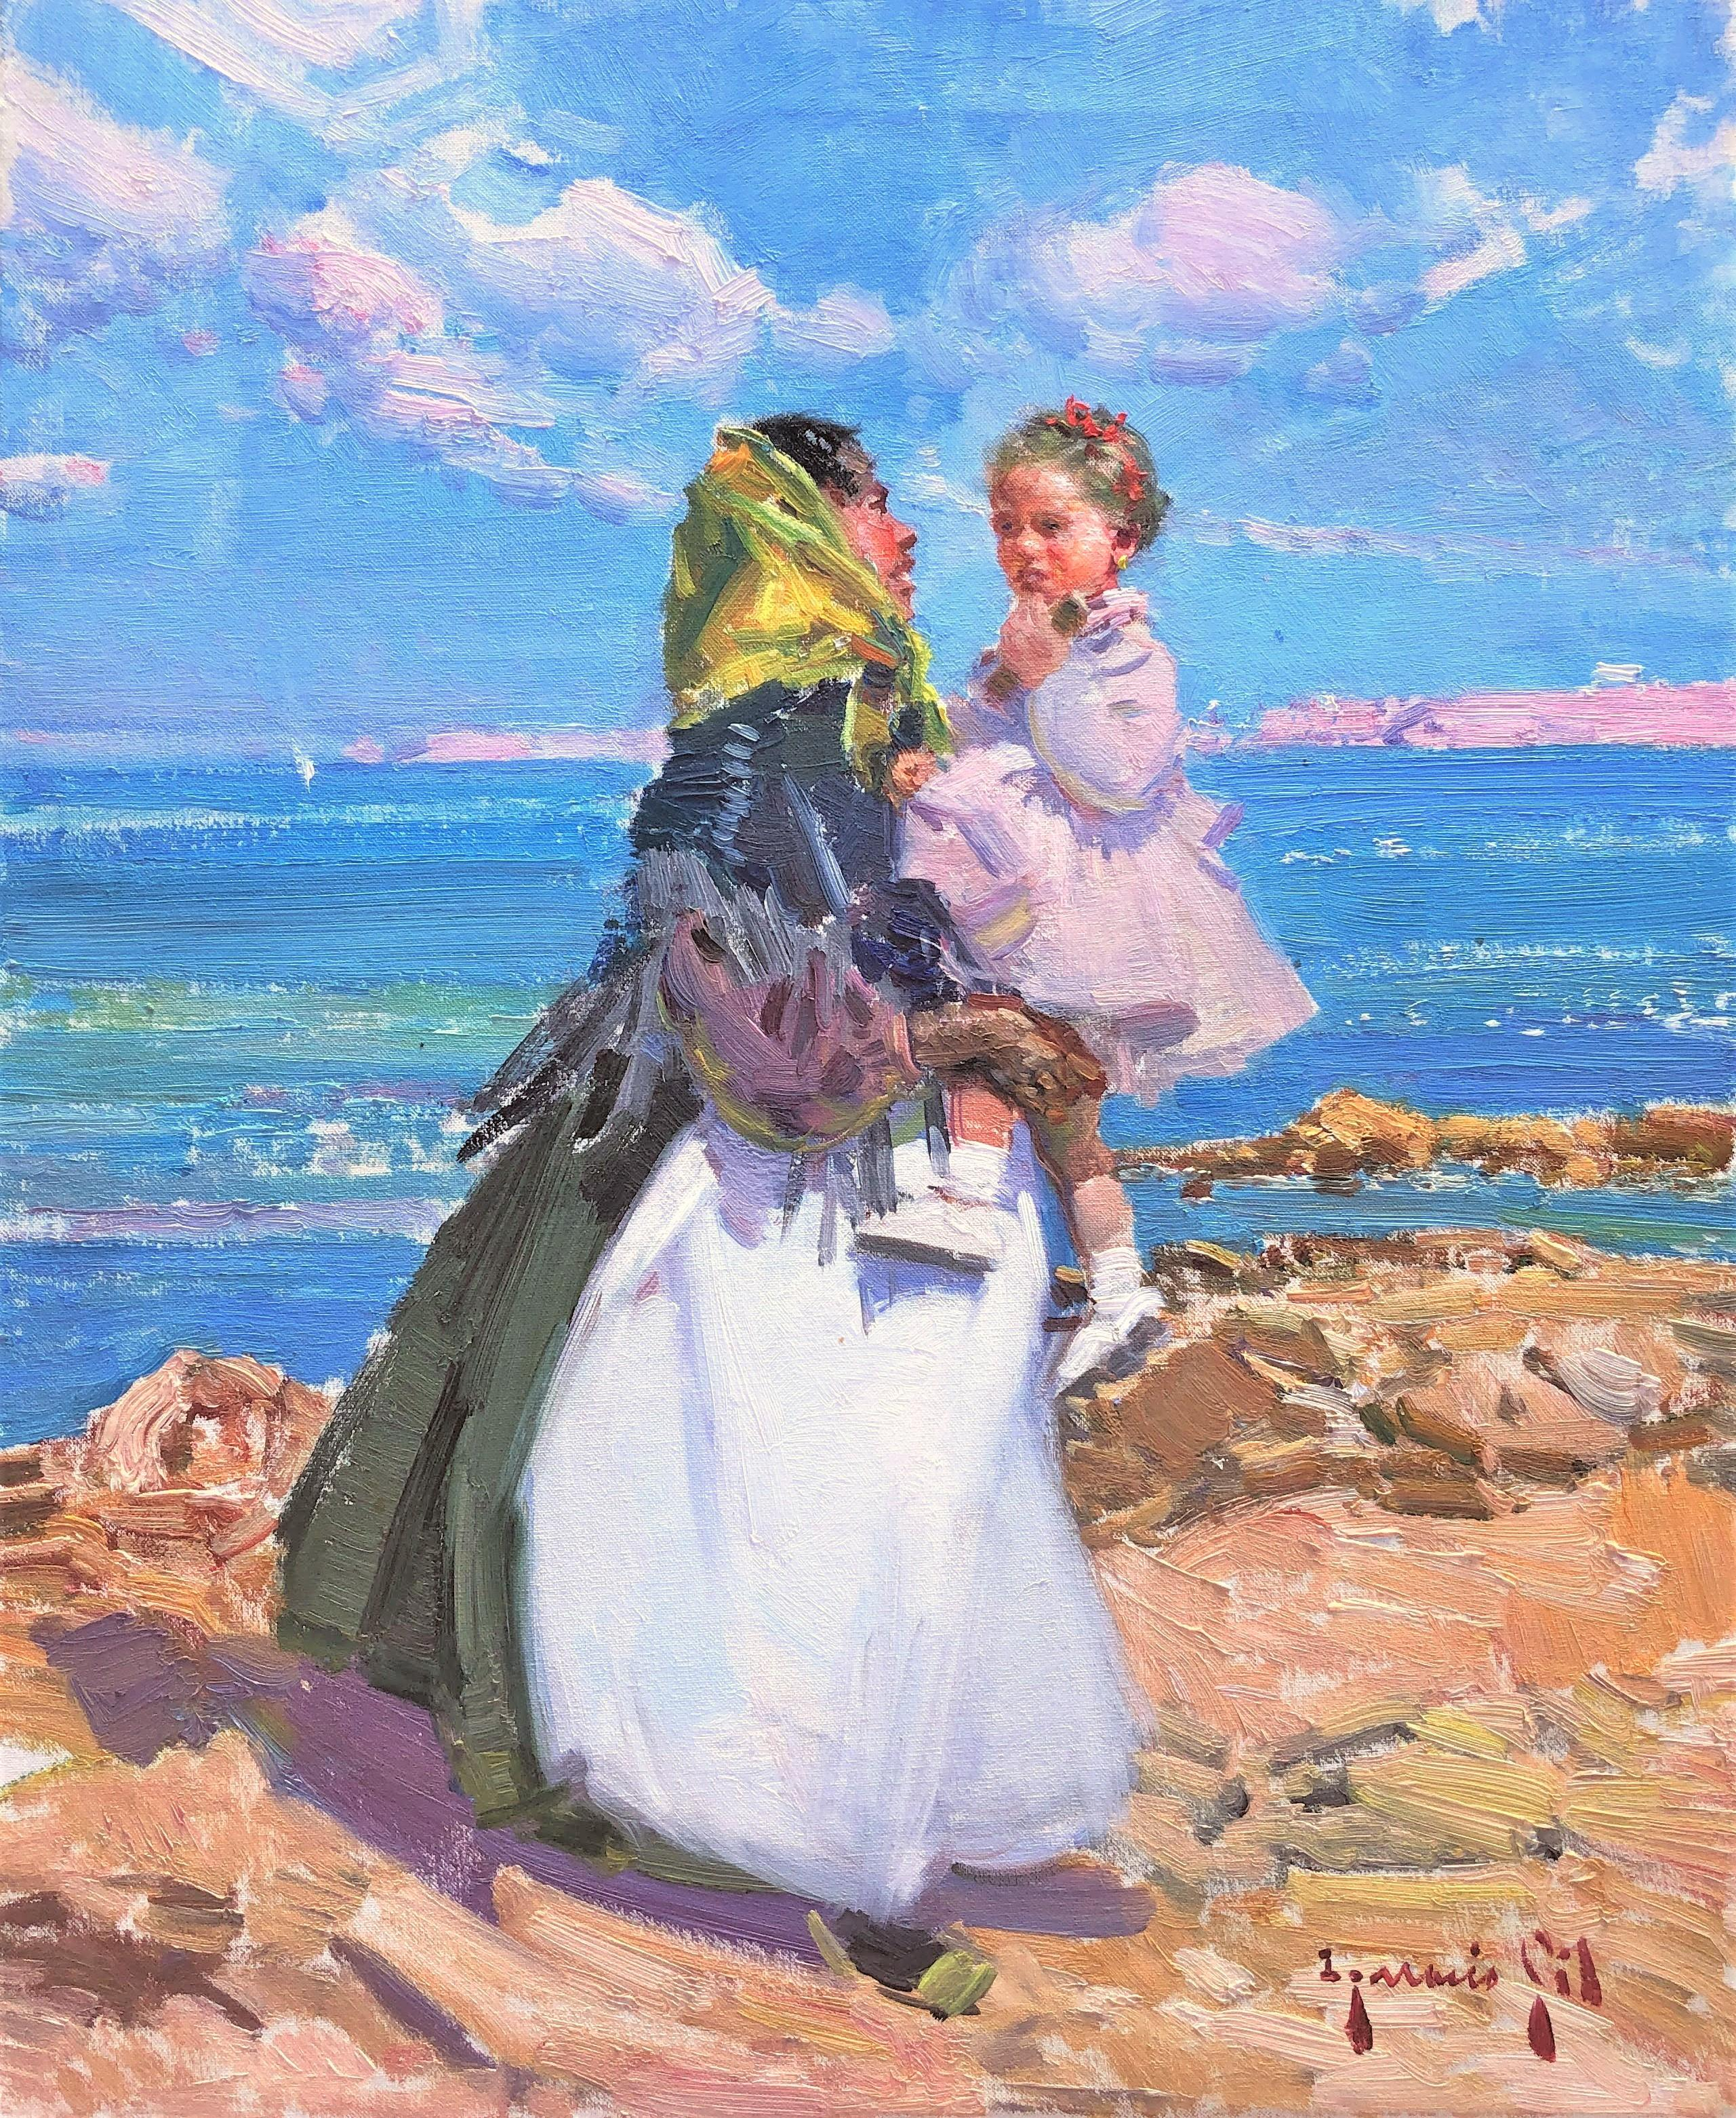 Maternity in Ibiza beach original oil on canvas painting